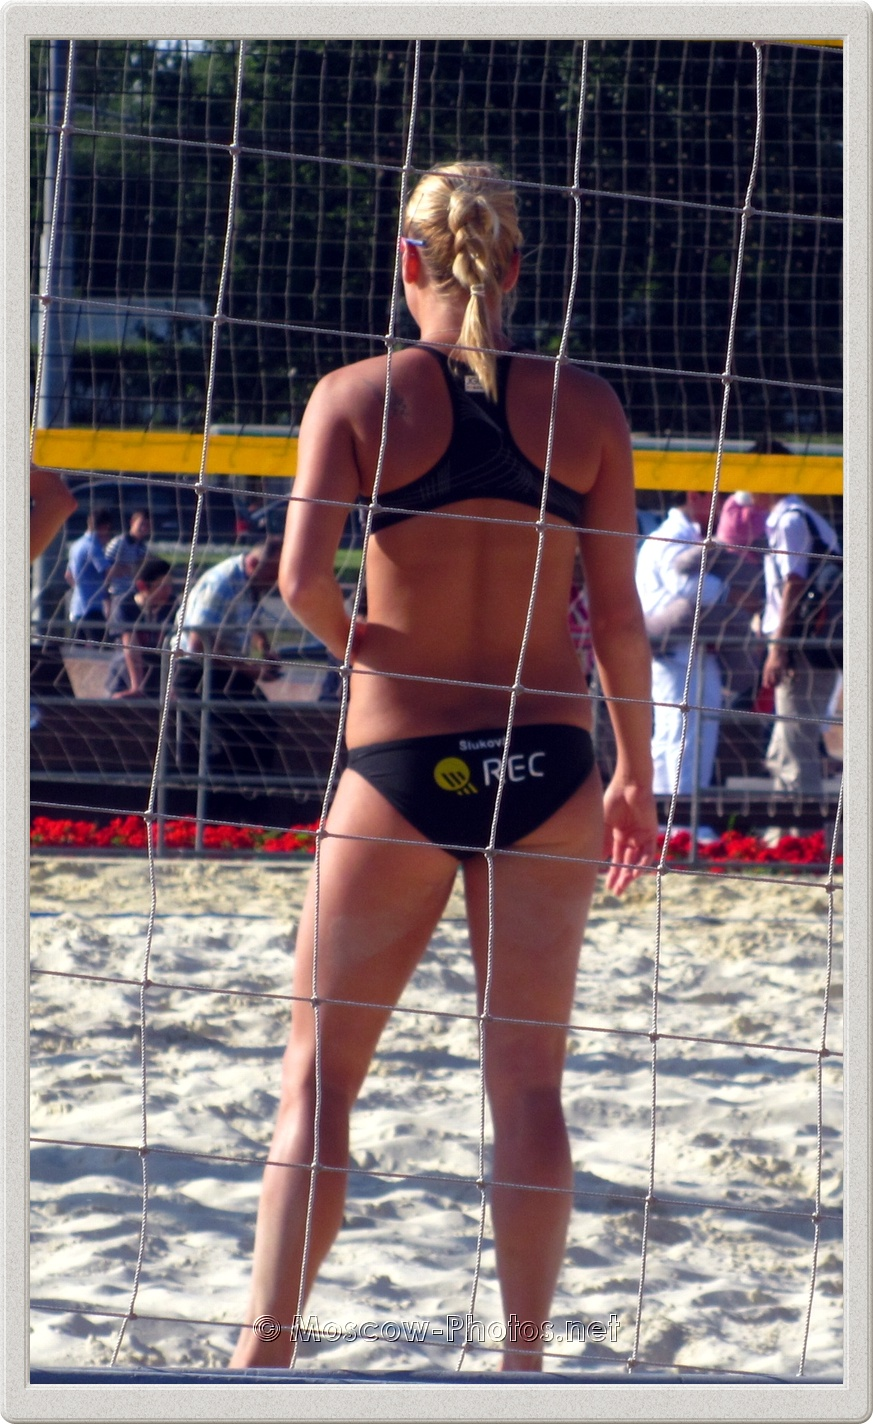 Beach Volley Player Marketa Slukova on Practice Court